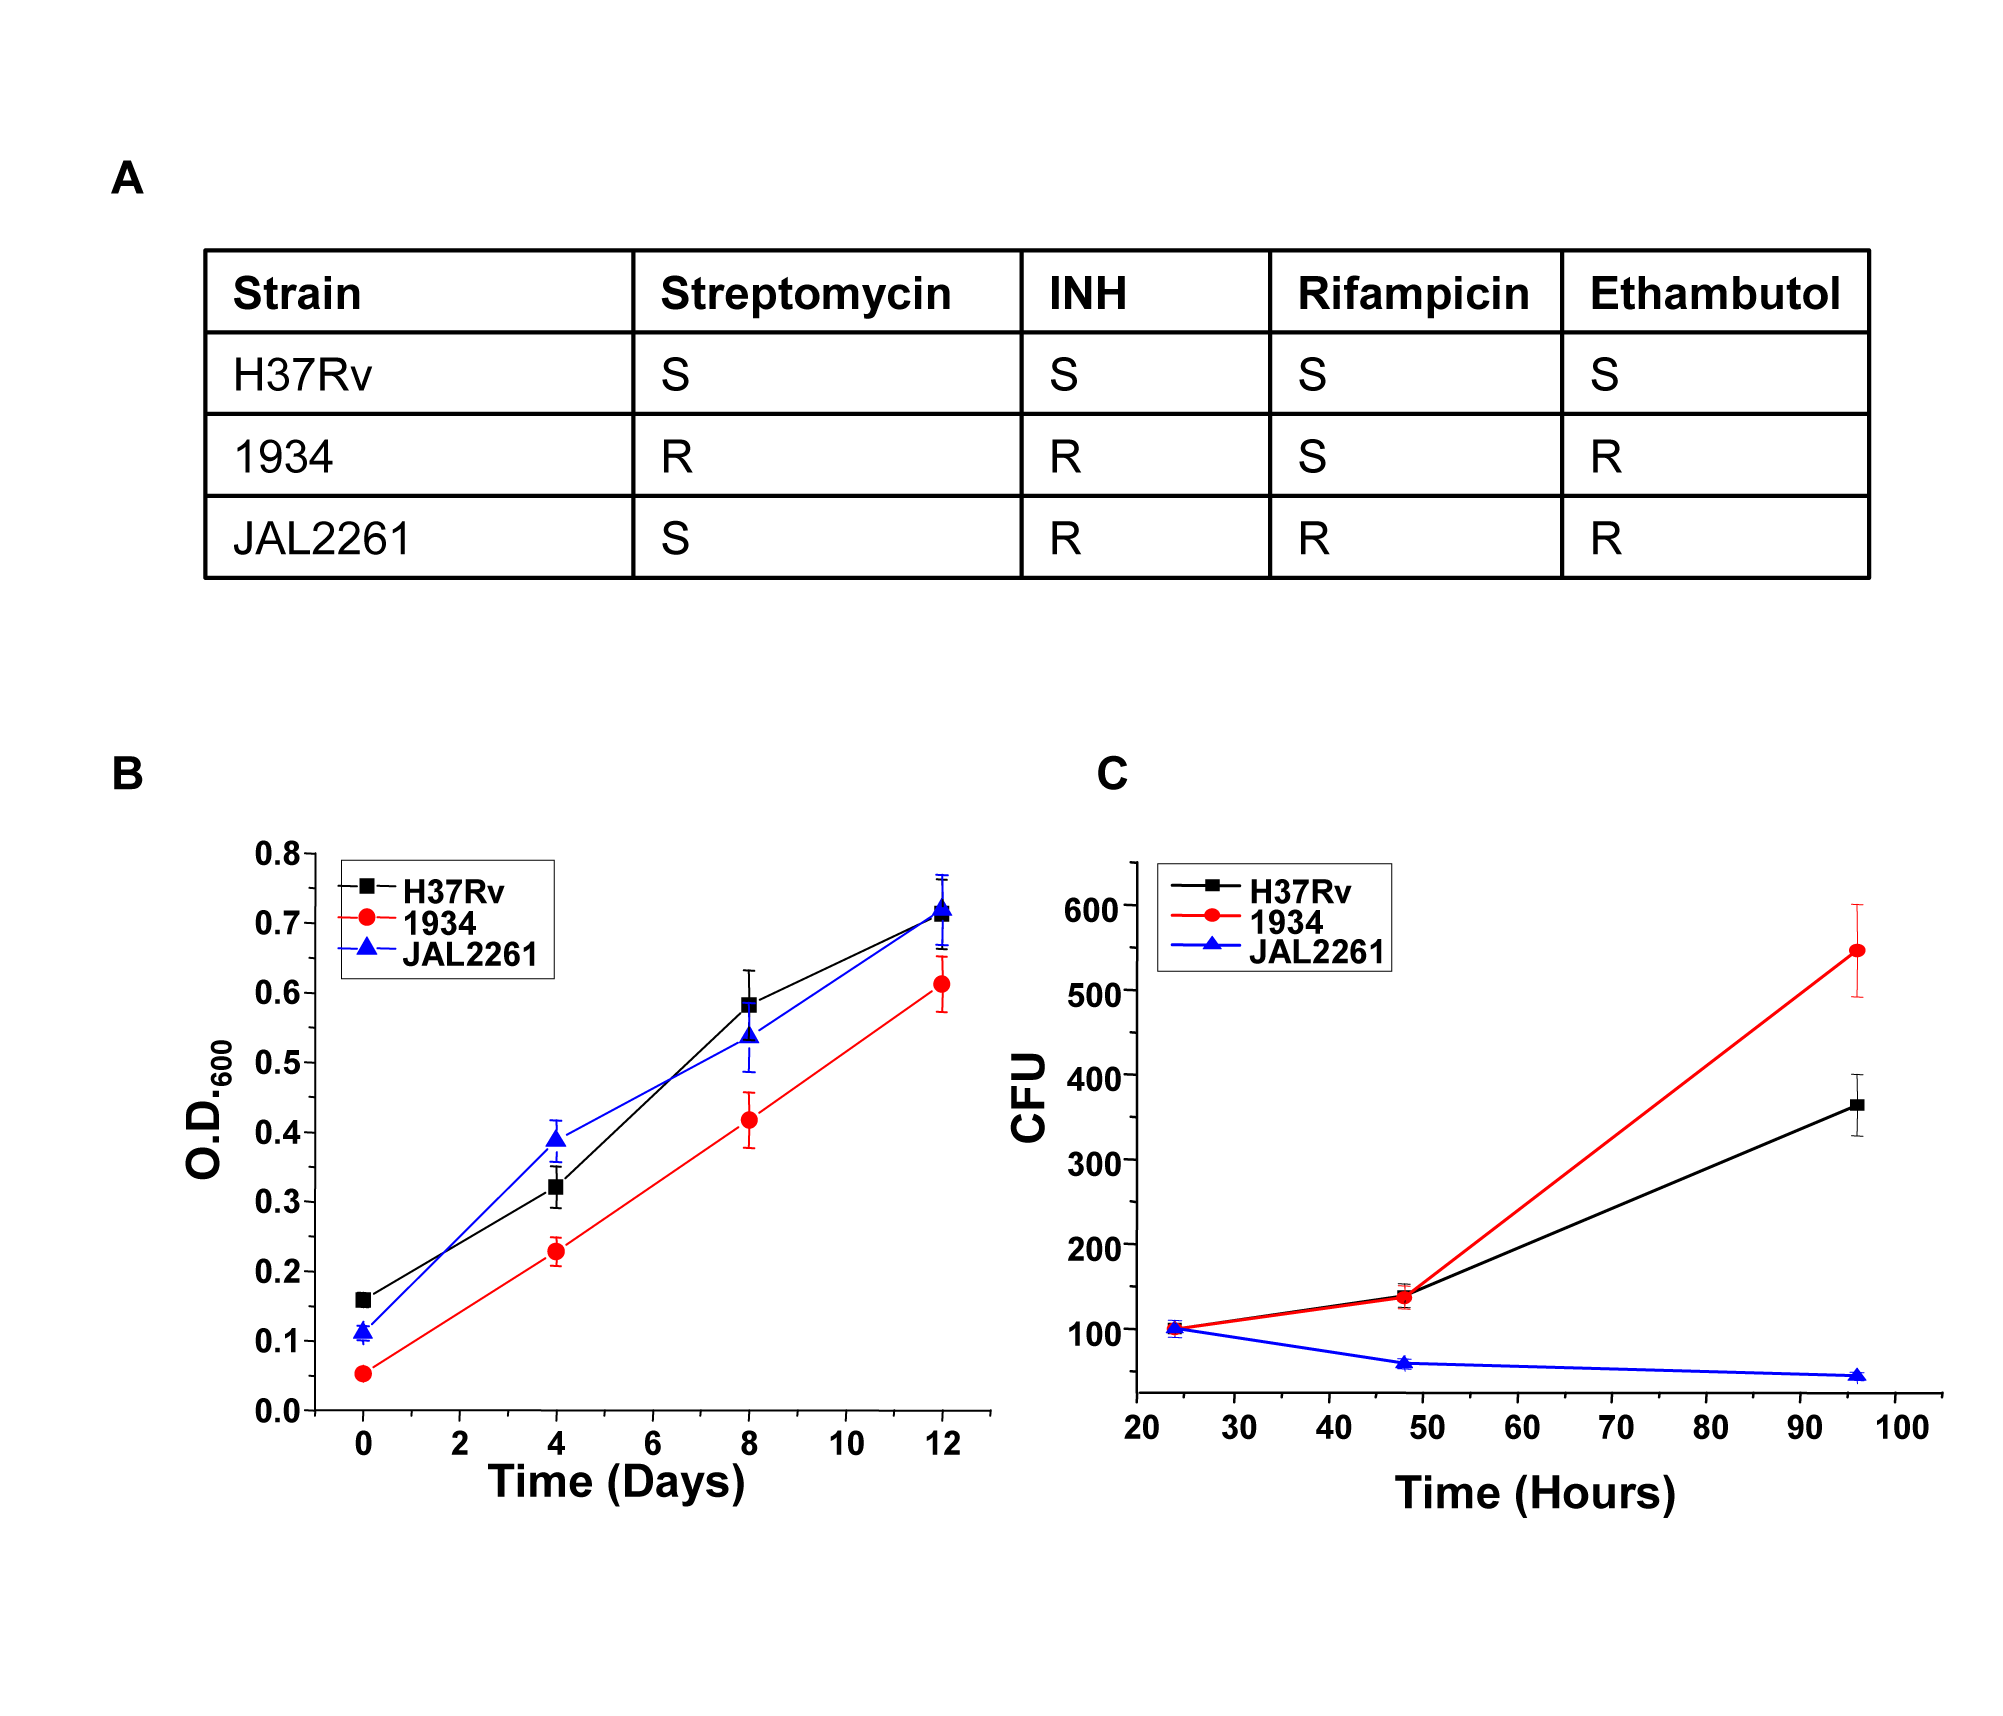 Intracellular growth properties of H37Rv and the two MDR isolates.